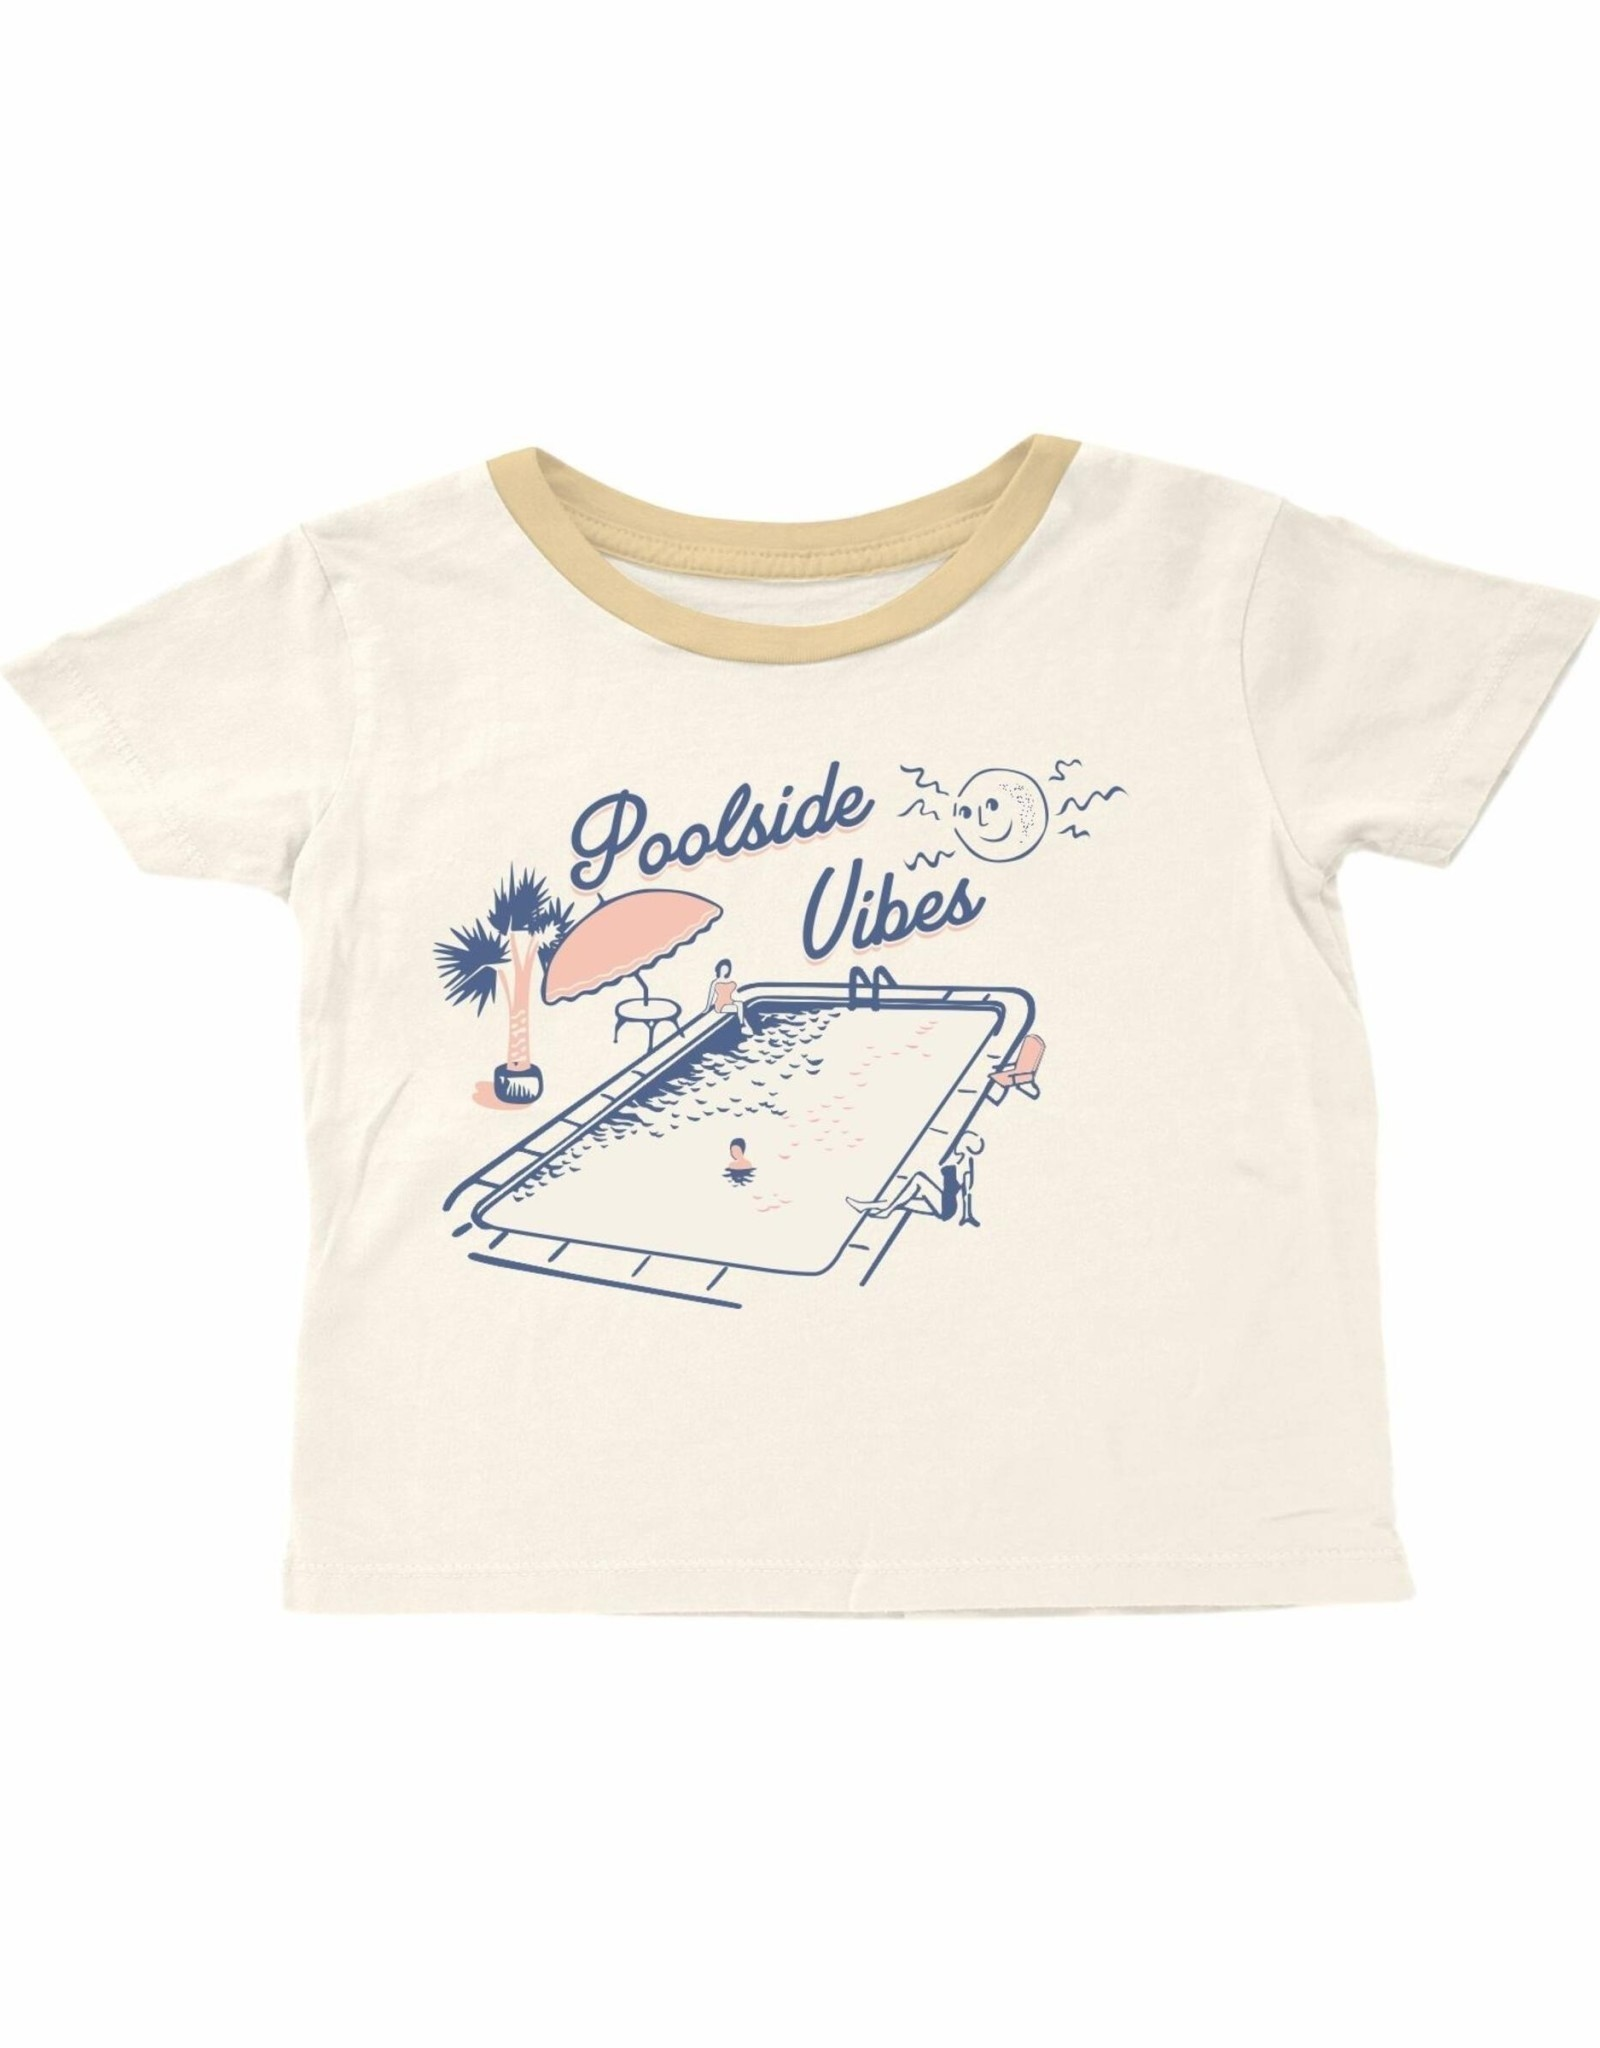 Tiny Whales poolside vibes tee